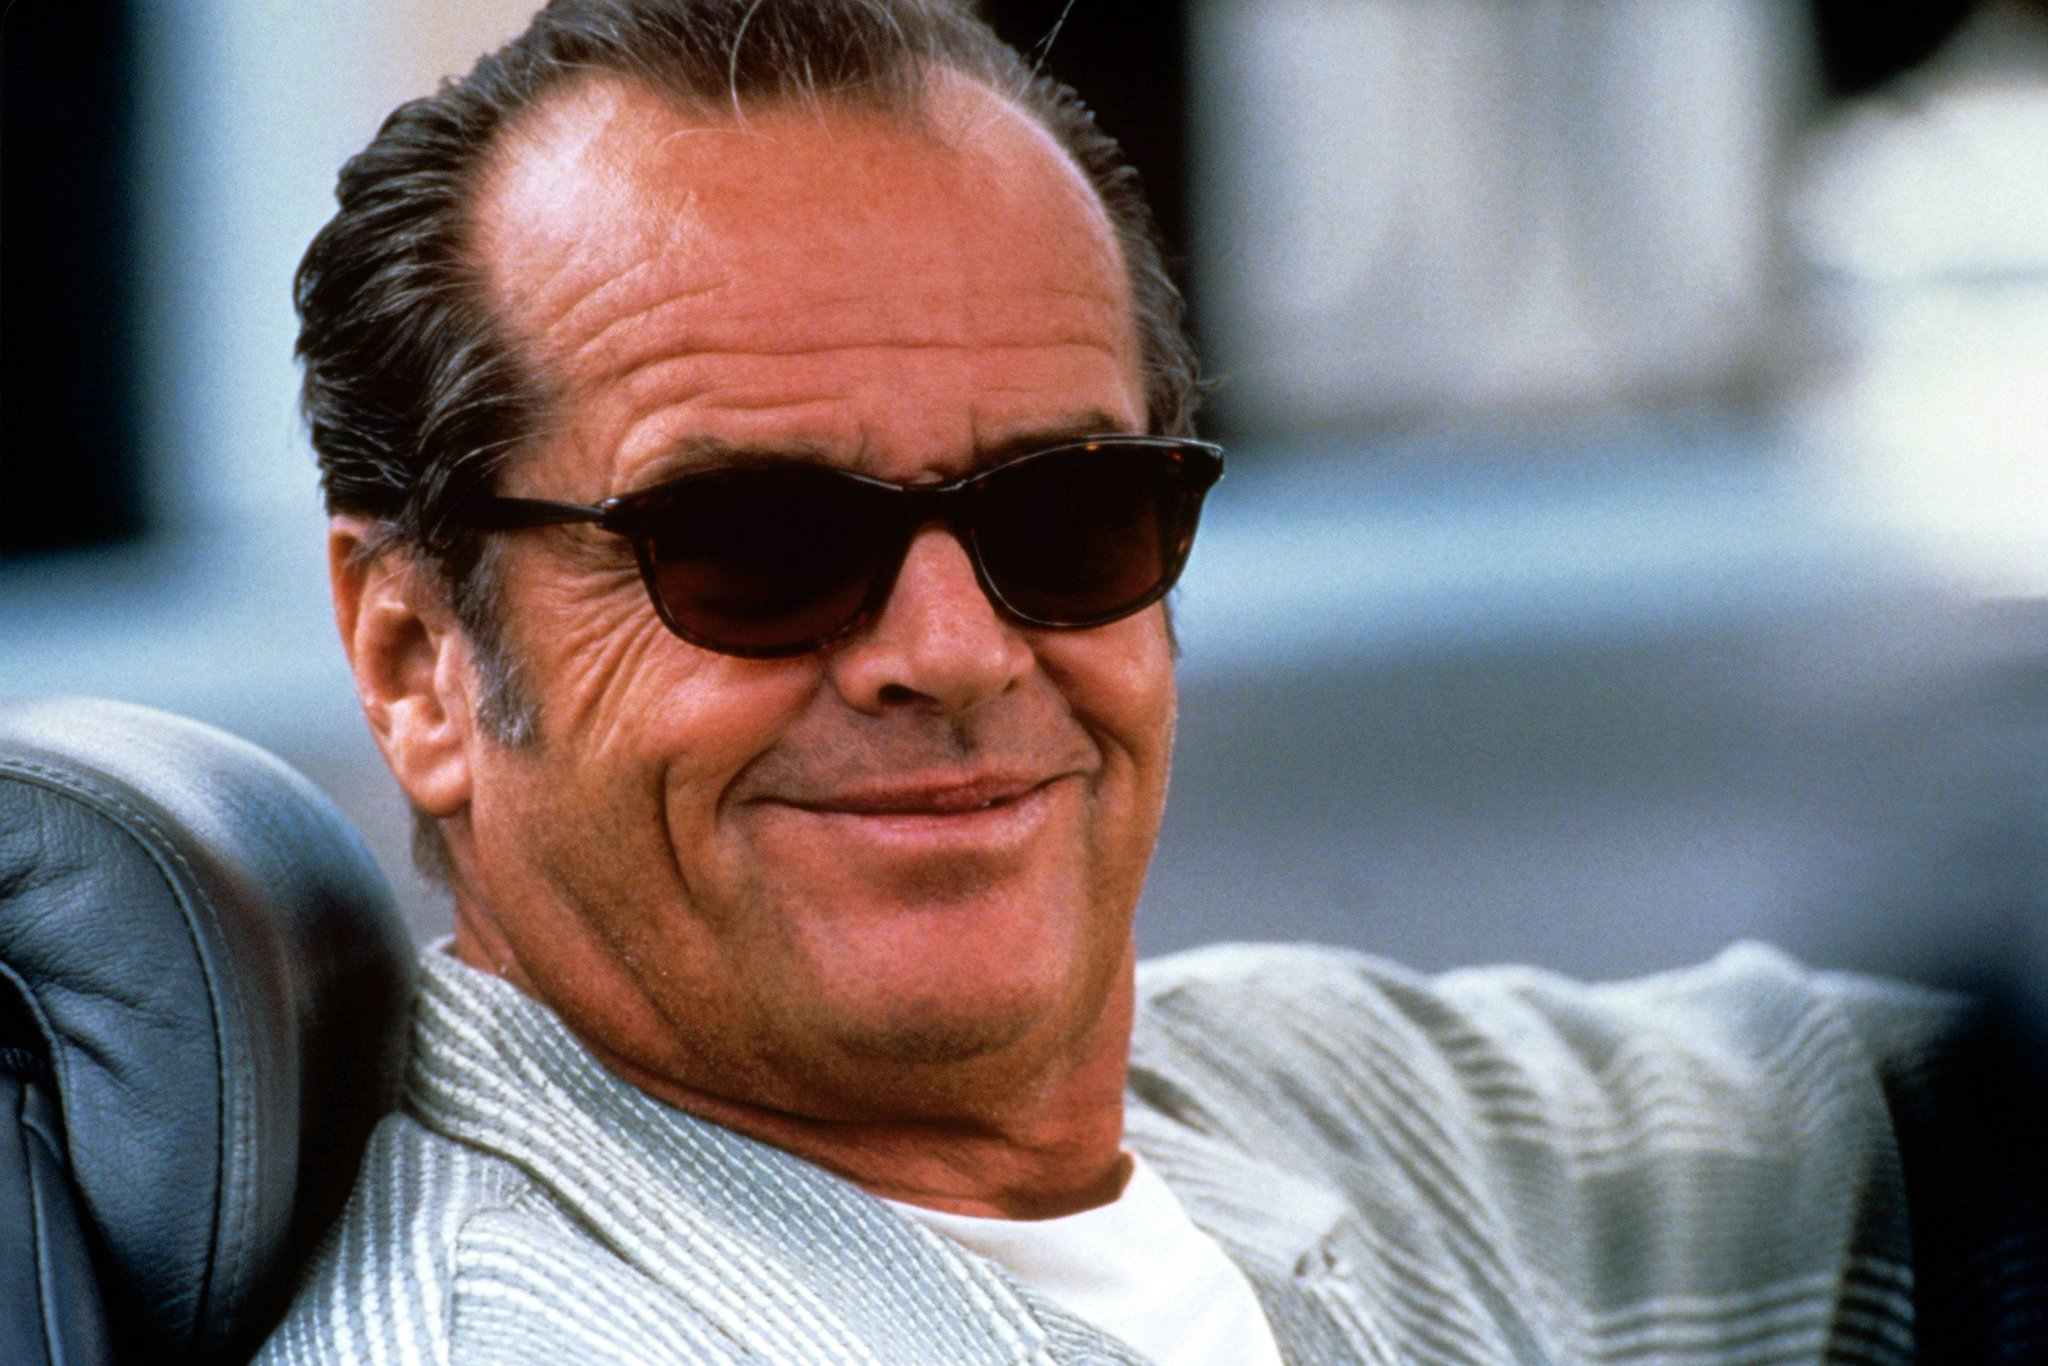 """I wanted to be the best actor possible. I worked very hard at the craft of it.""   He succeeded. Happy 81st birthday Jack Nicholson. #BornOnThisDay https://t.co/guoGcKYP3t"